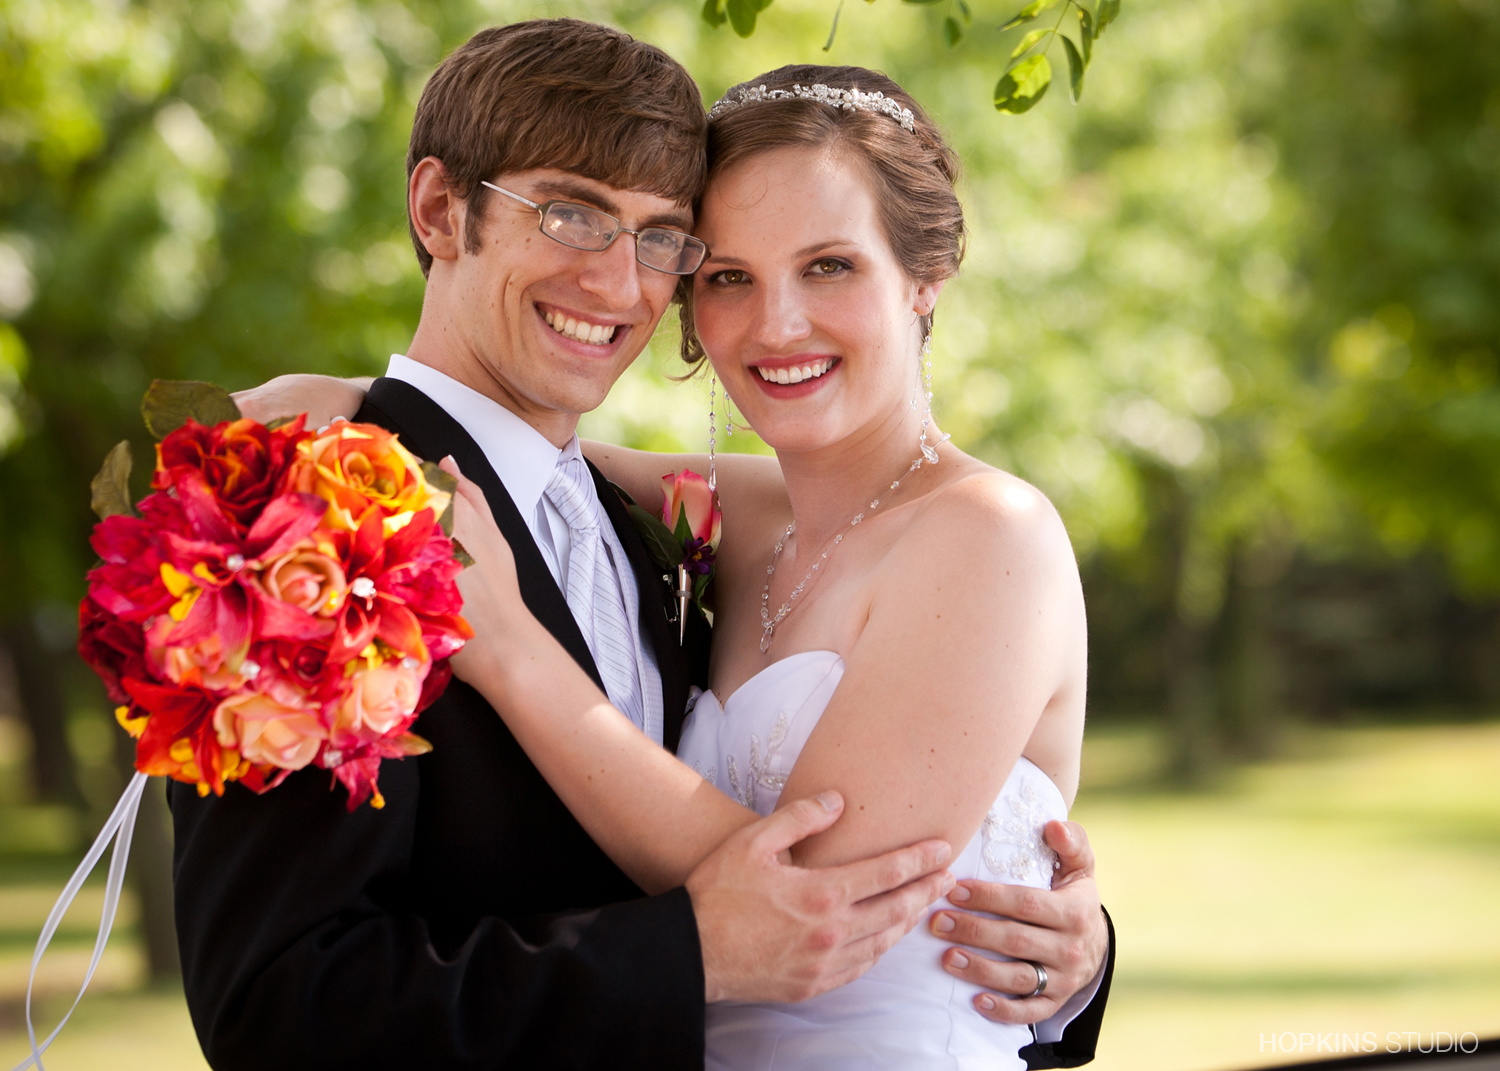 Wedding-Photography-Vineland-Center-St Joseph-Southwest-Michigan_86.jpg